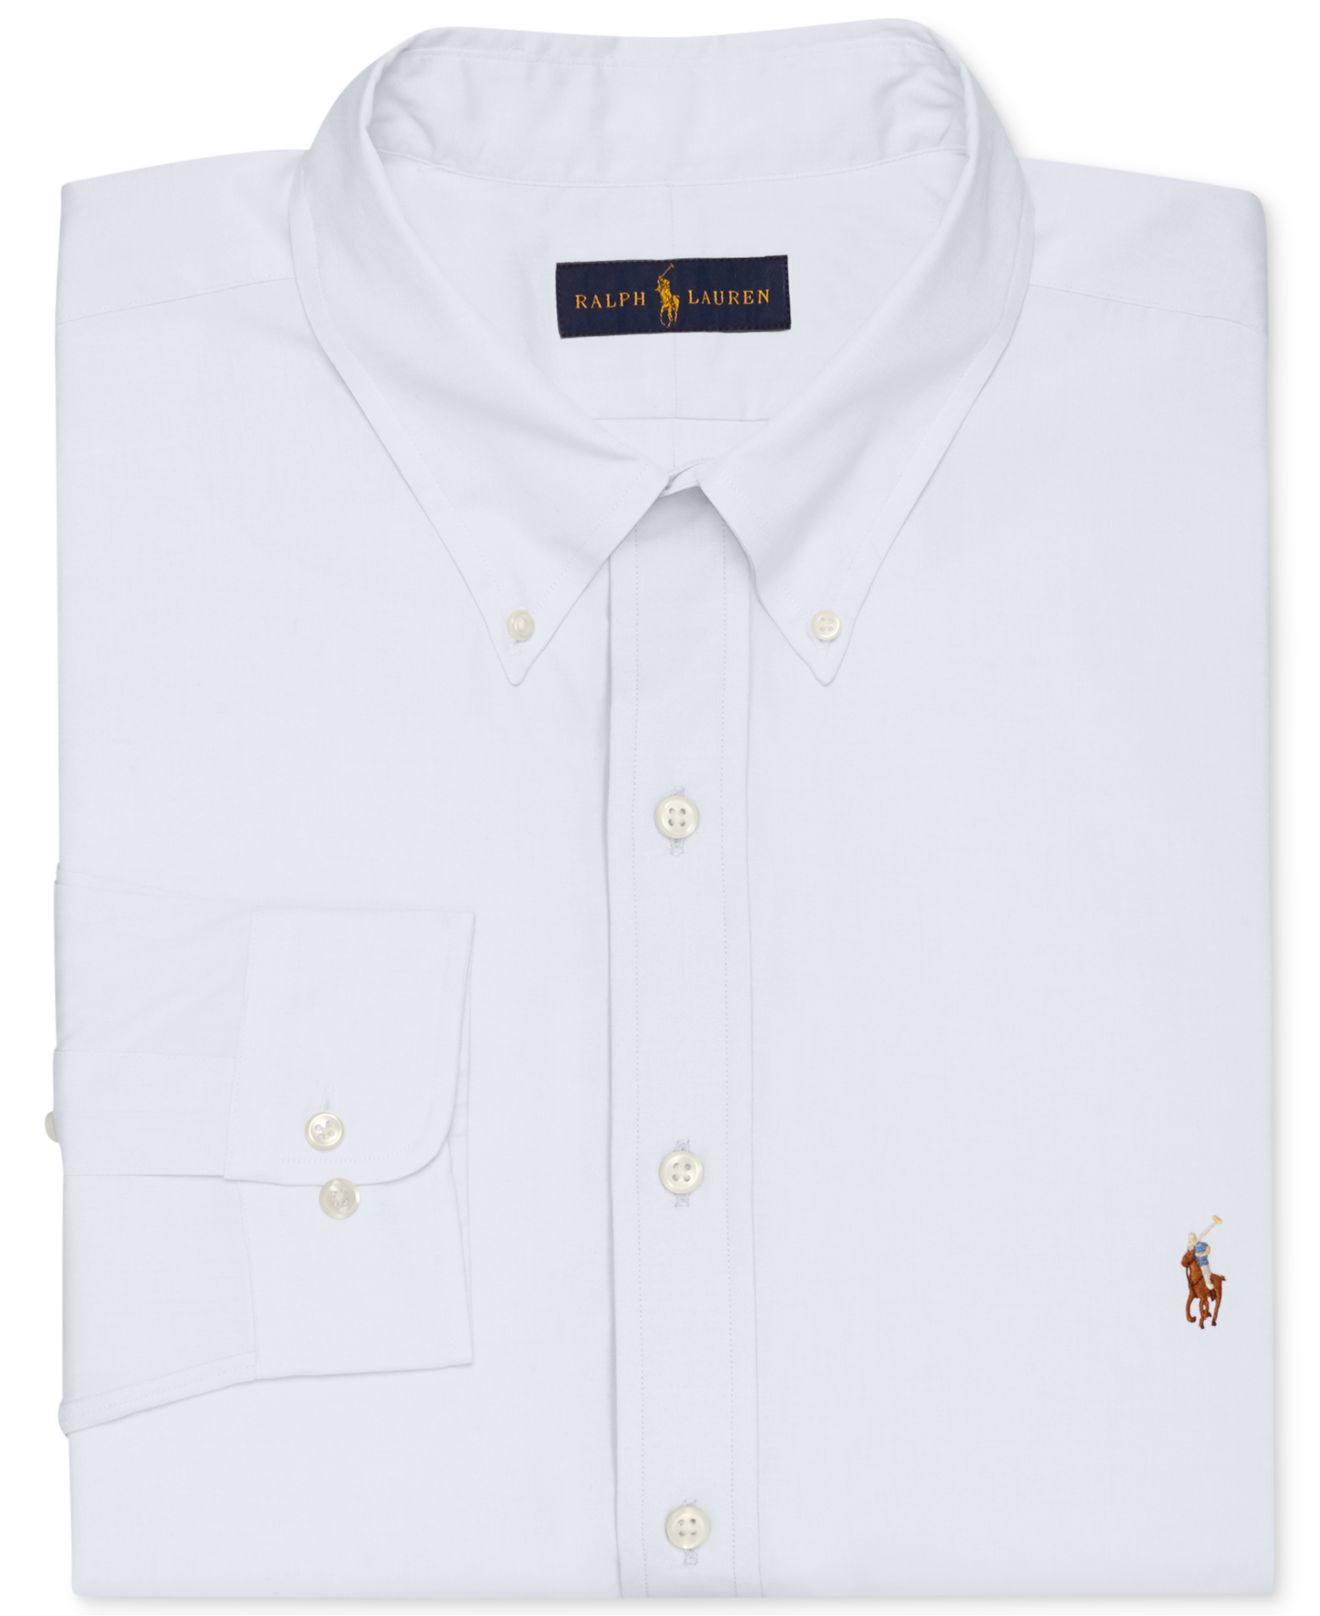 Polo ralph lauren men 39 s big and tall white dress shirt in for Dress shirts for tall men